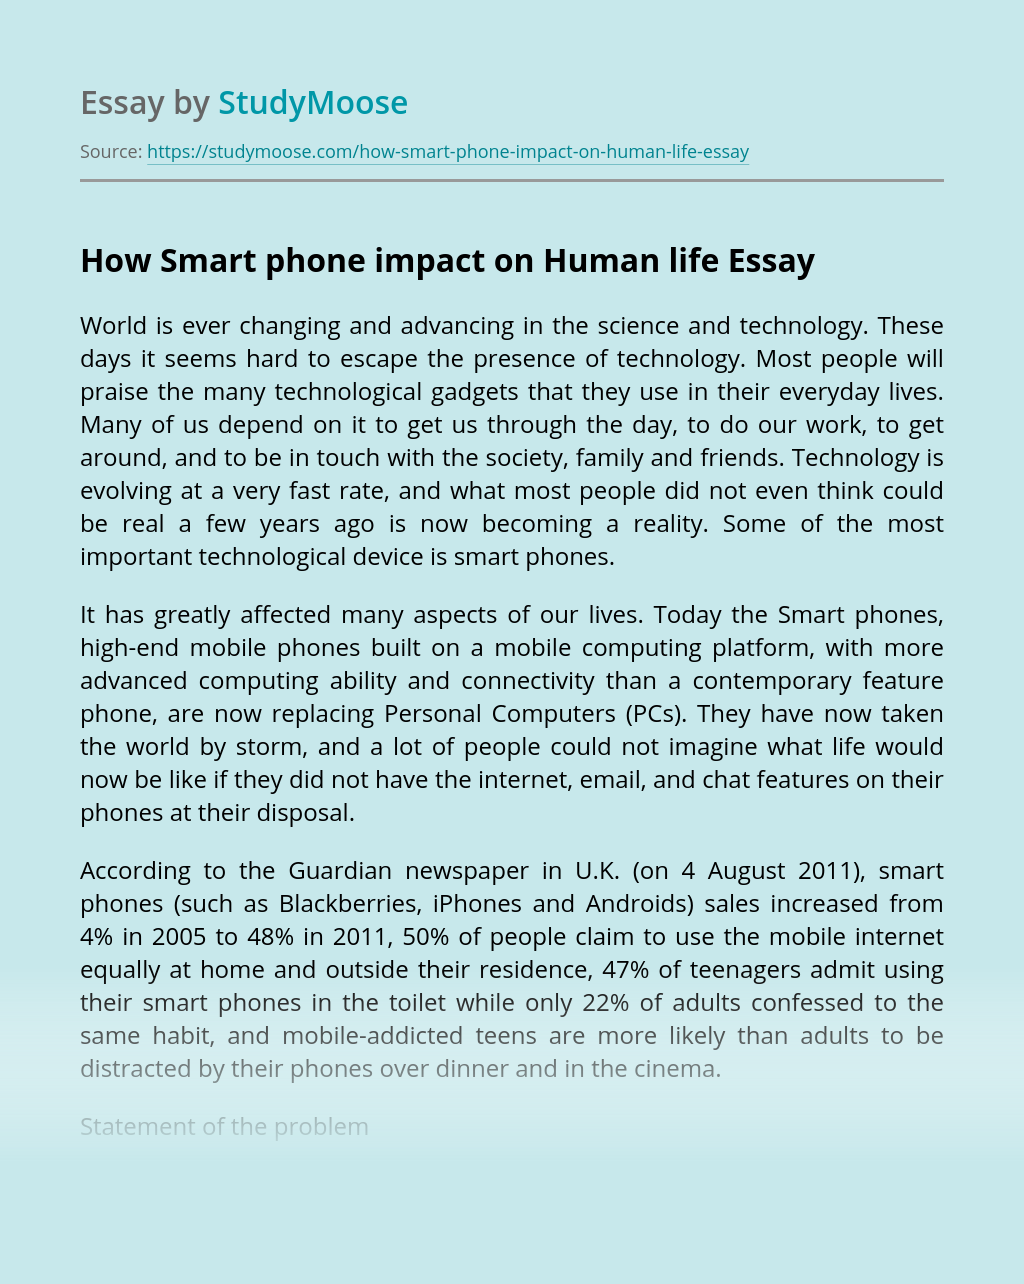 How Smart phone impact on Human life